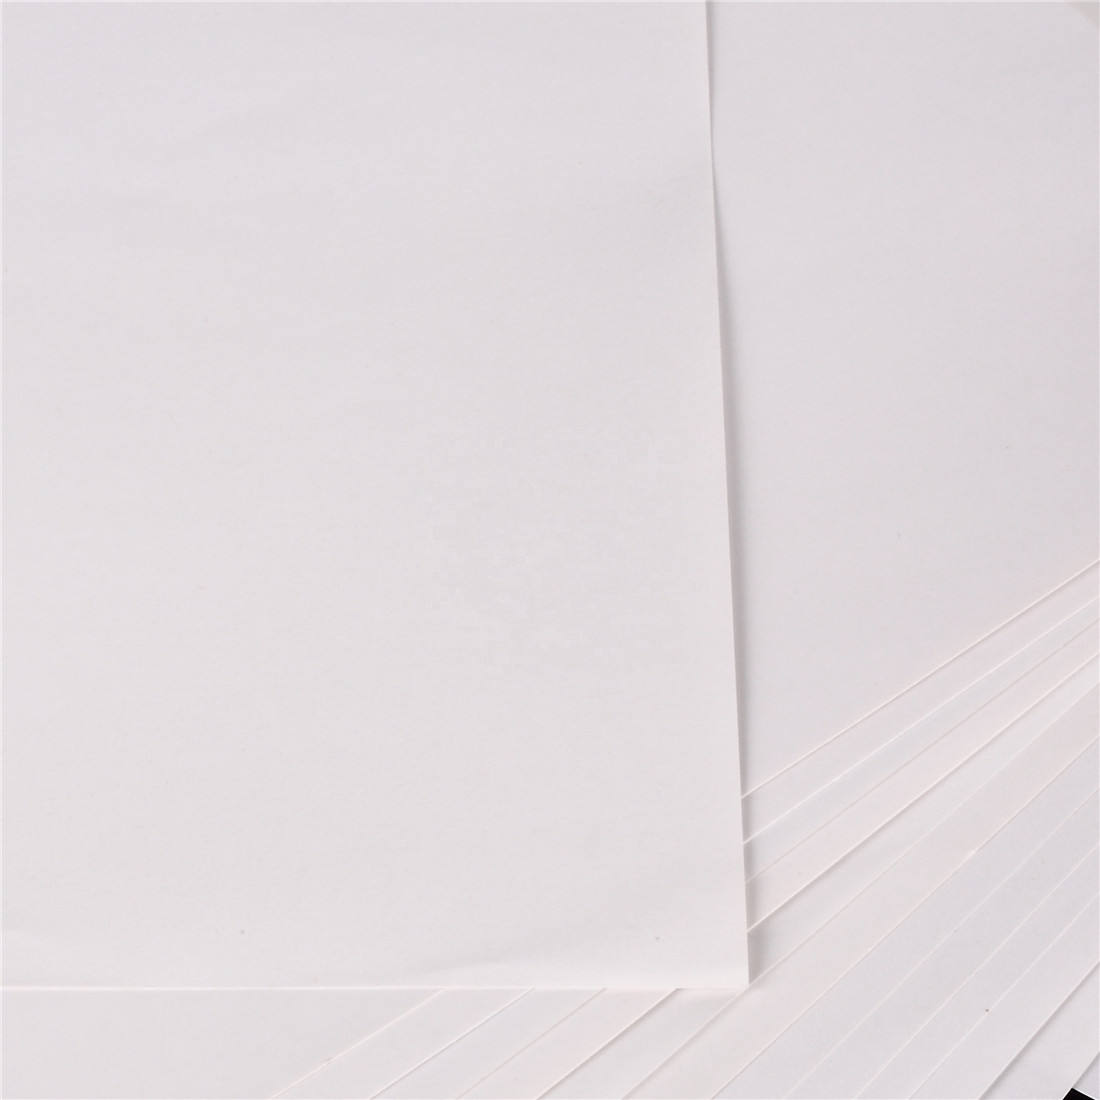 Wholesale Price Loose A3 A4 Size Sheer Roll Matt Glossy Sheets Board C1S Art Paper For Card Supplier Supplies 80Gsm 128G 210 G